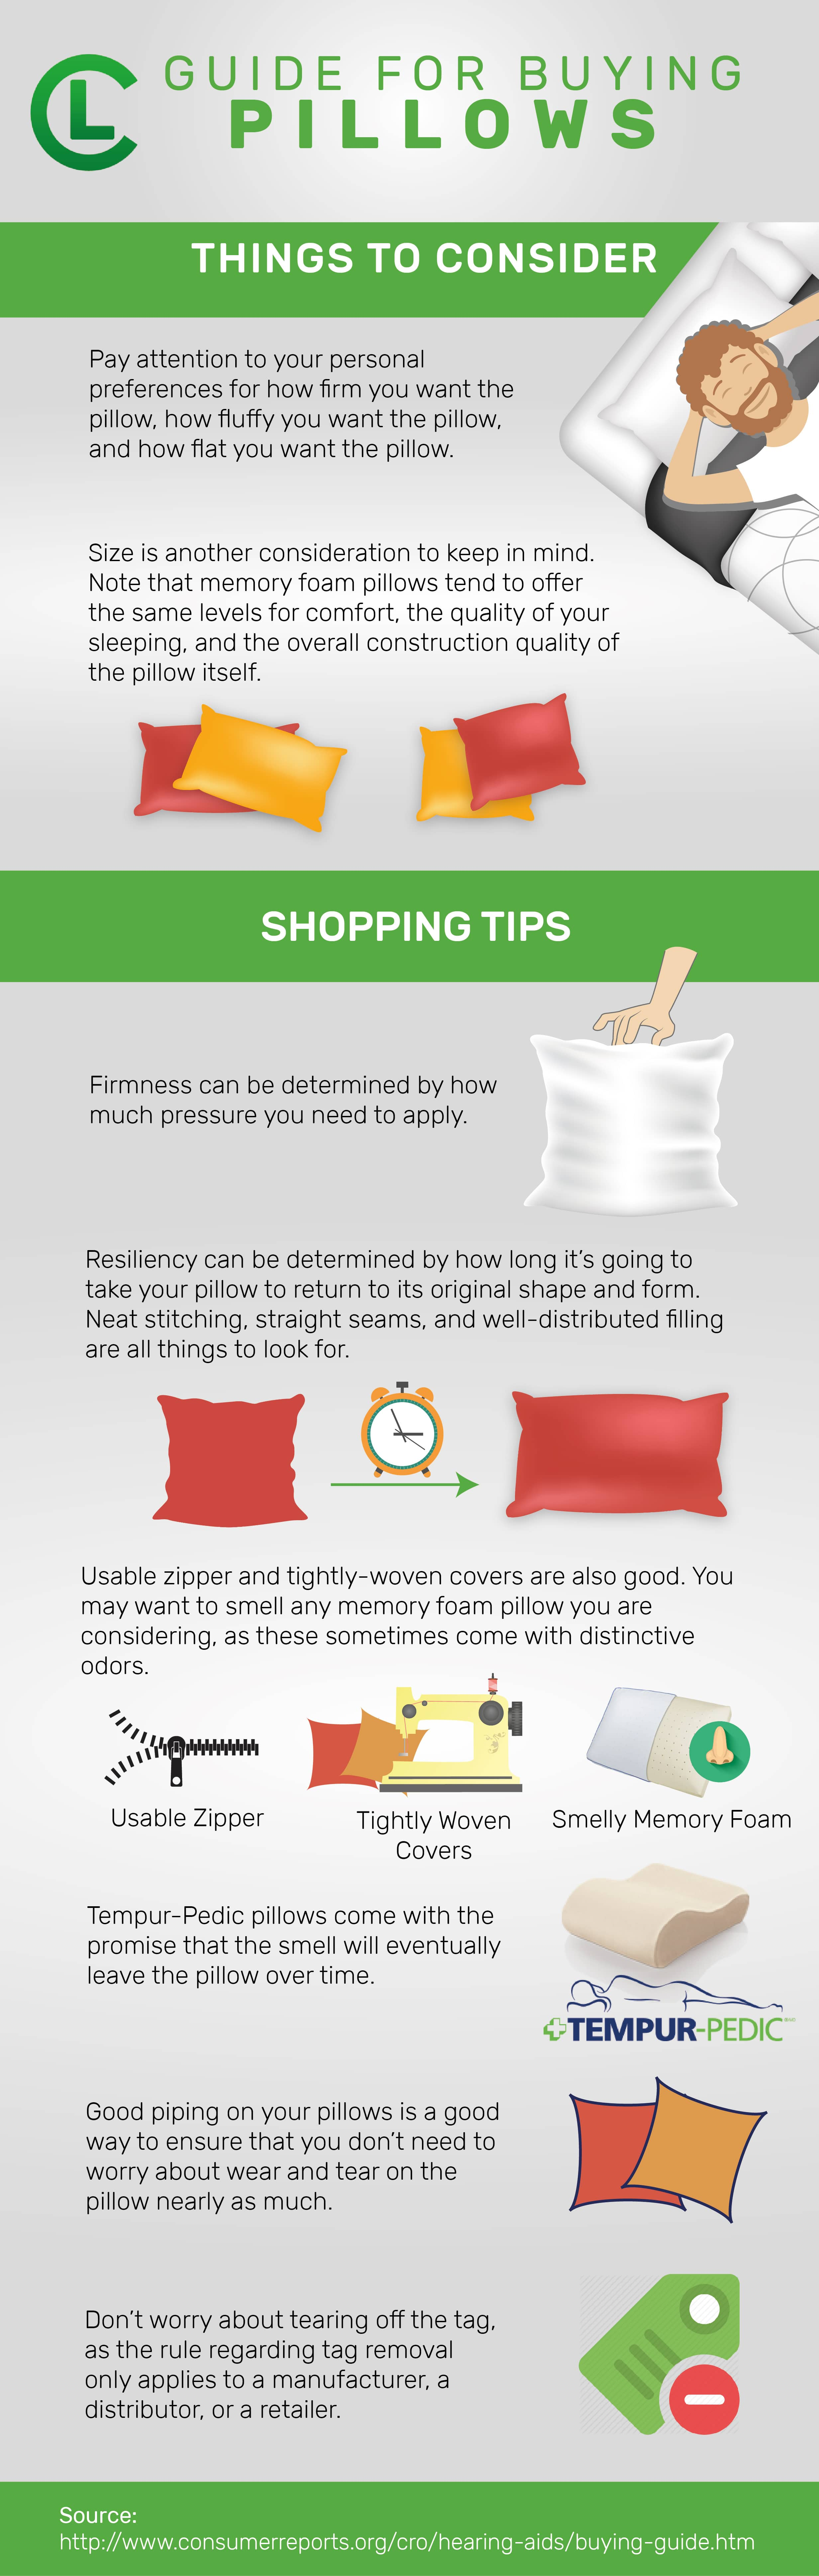 Guide For Buying Pillows Infographic